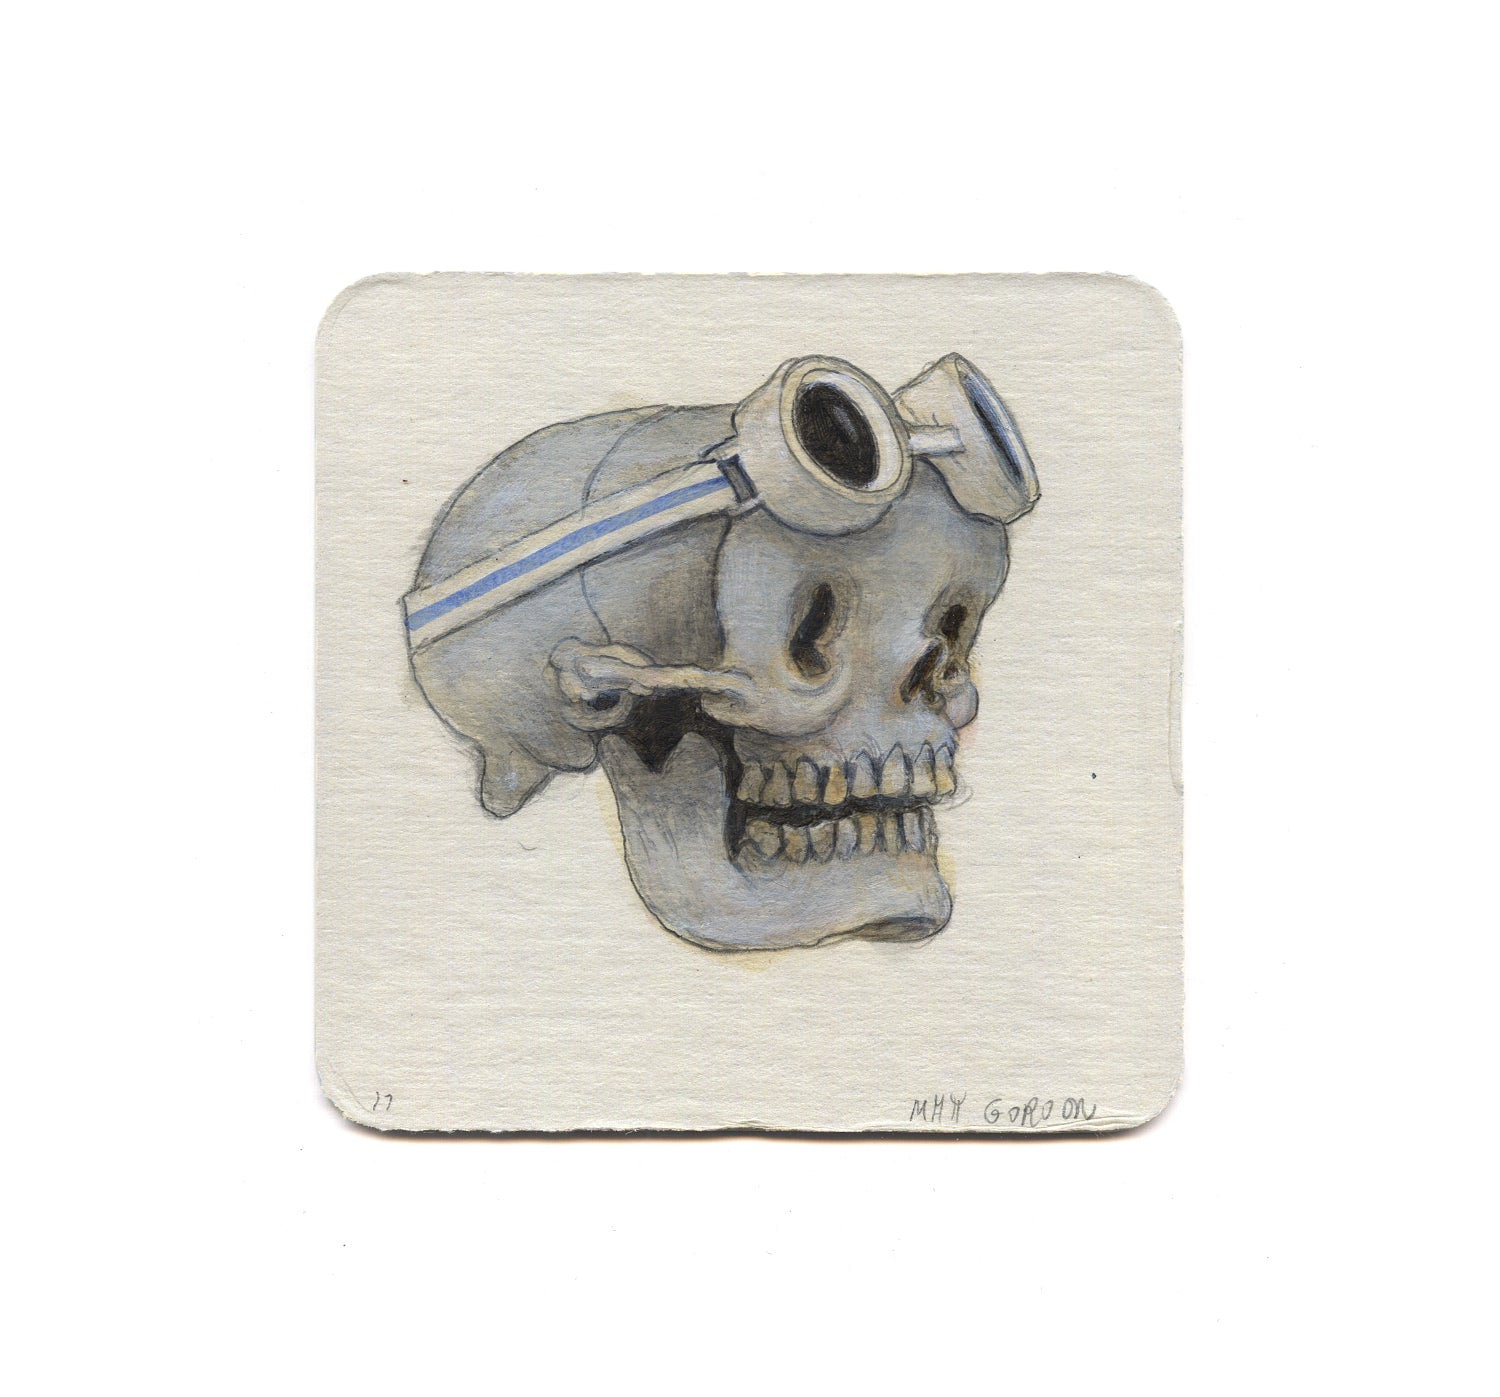 S1 Matt Gordon - Paris Picnic Coaster